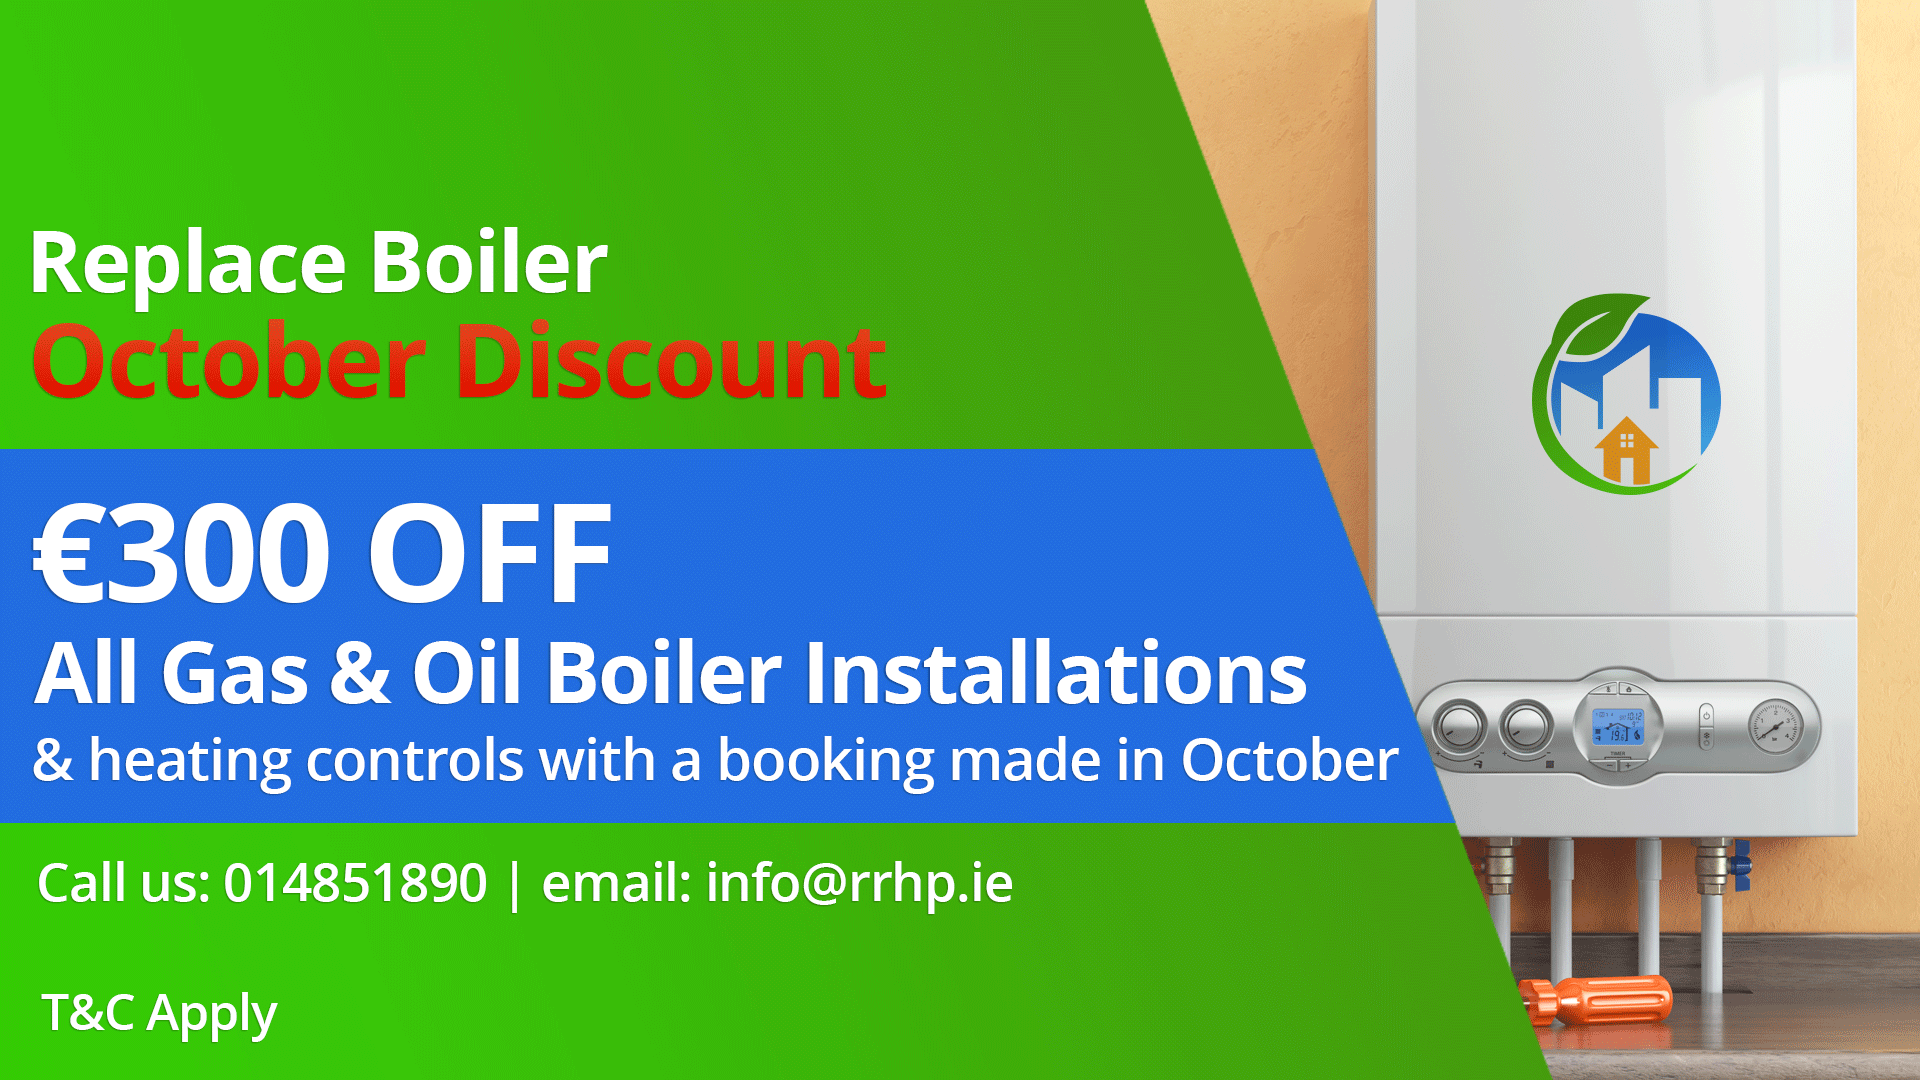 Replace Boiler October discount